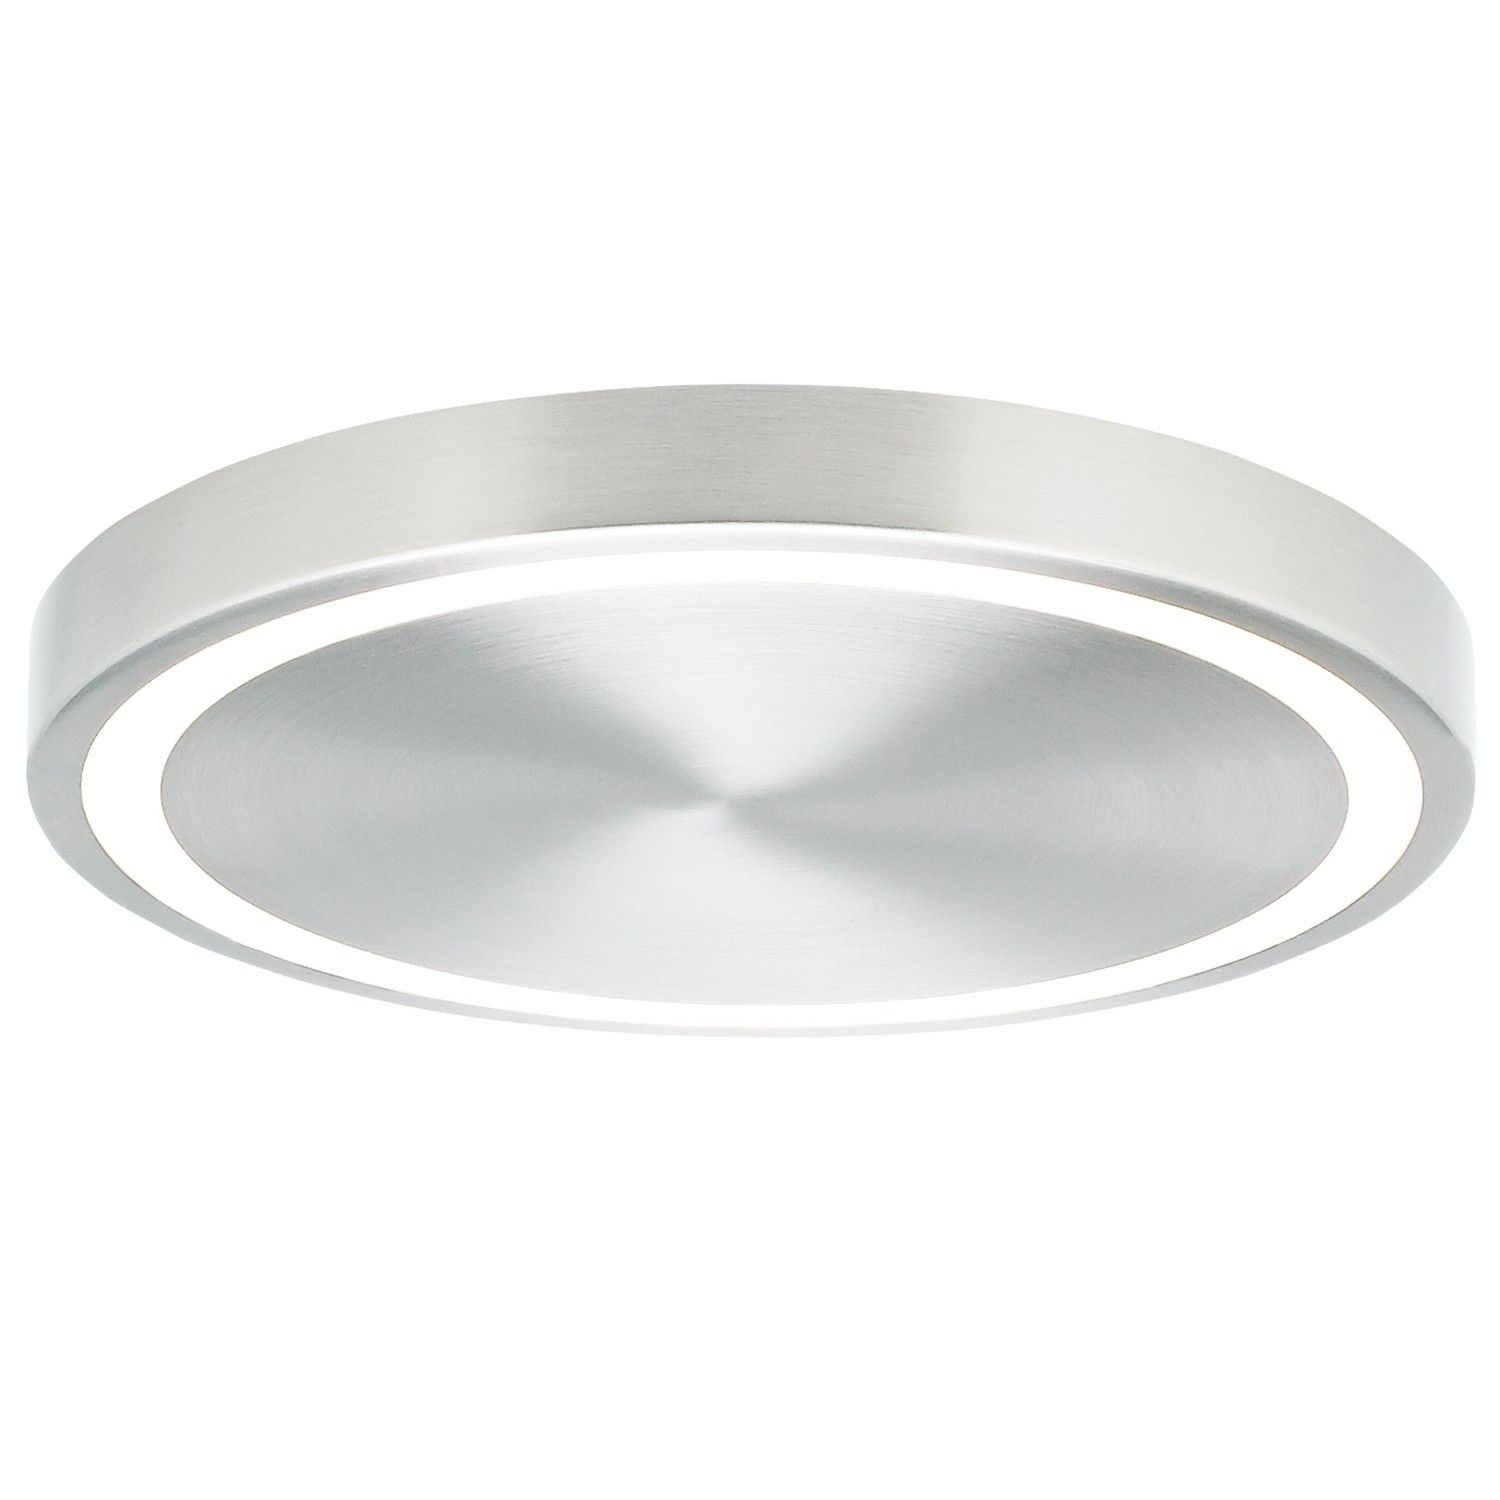 Crest Flush Mount Ceiling Light